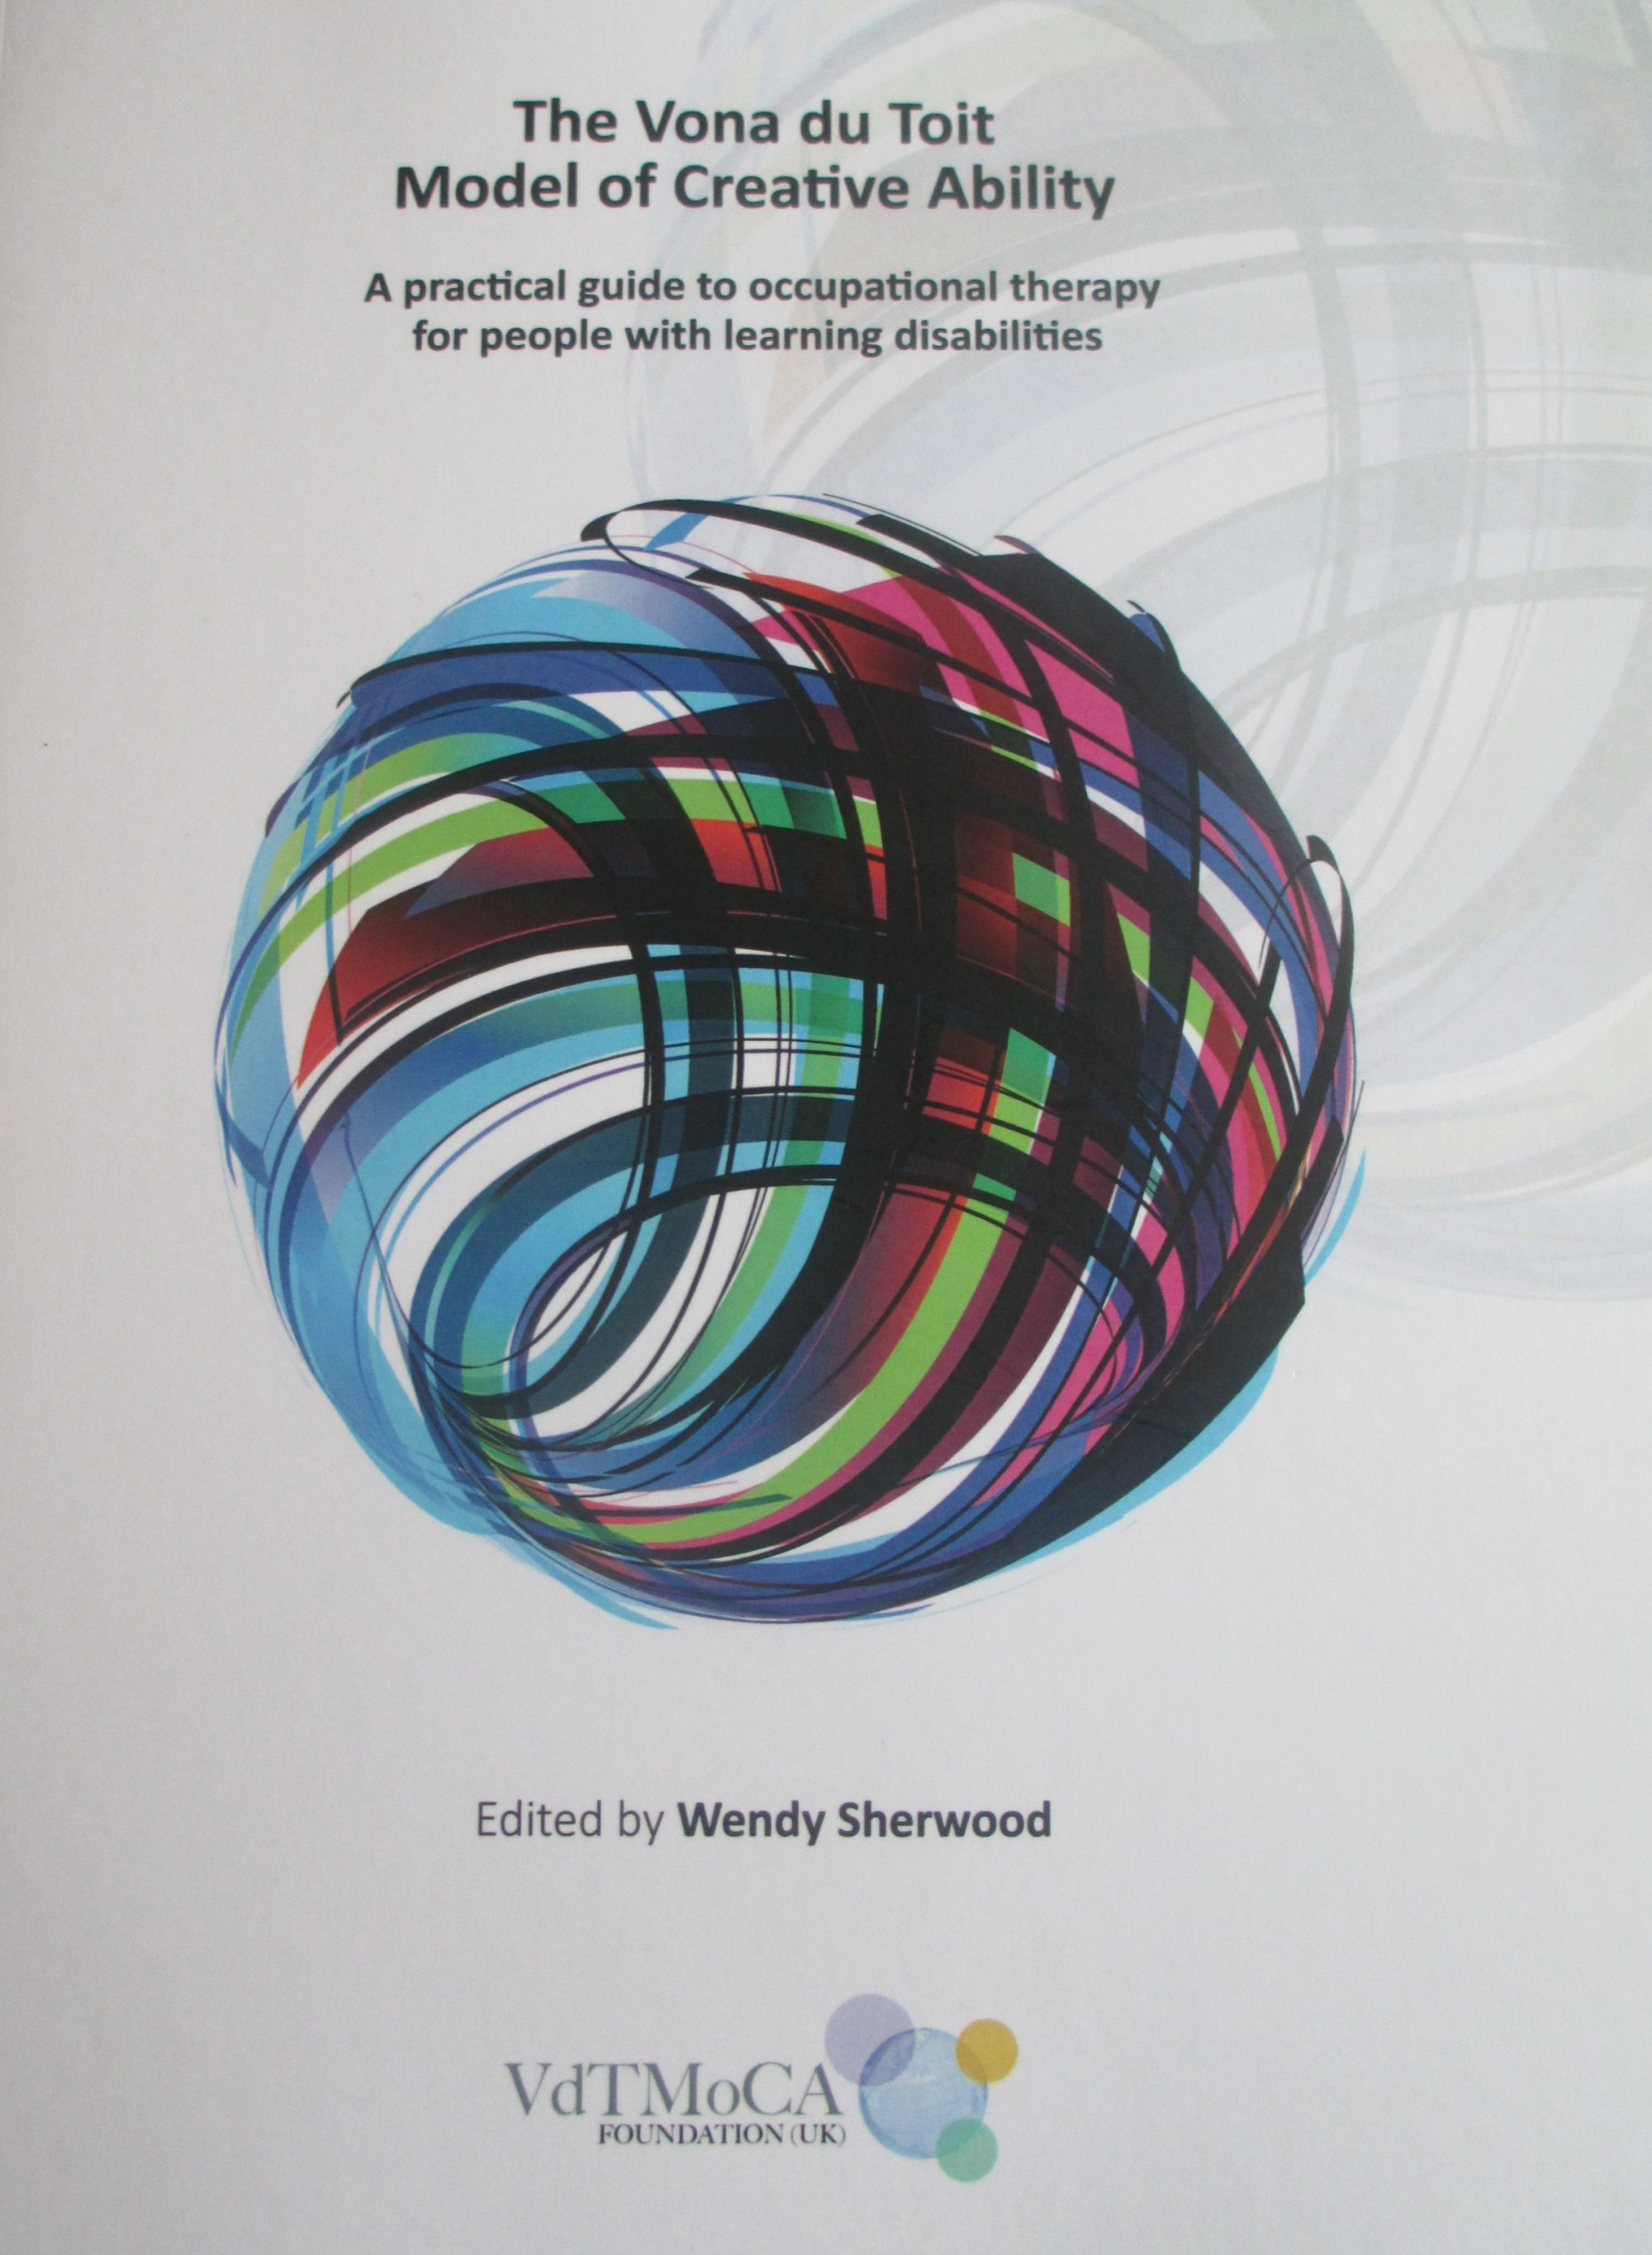 The Vona du Toit Model of Creative Ability: A practical guide to occupational therapy for people with learning disabilities